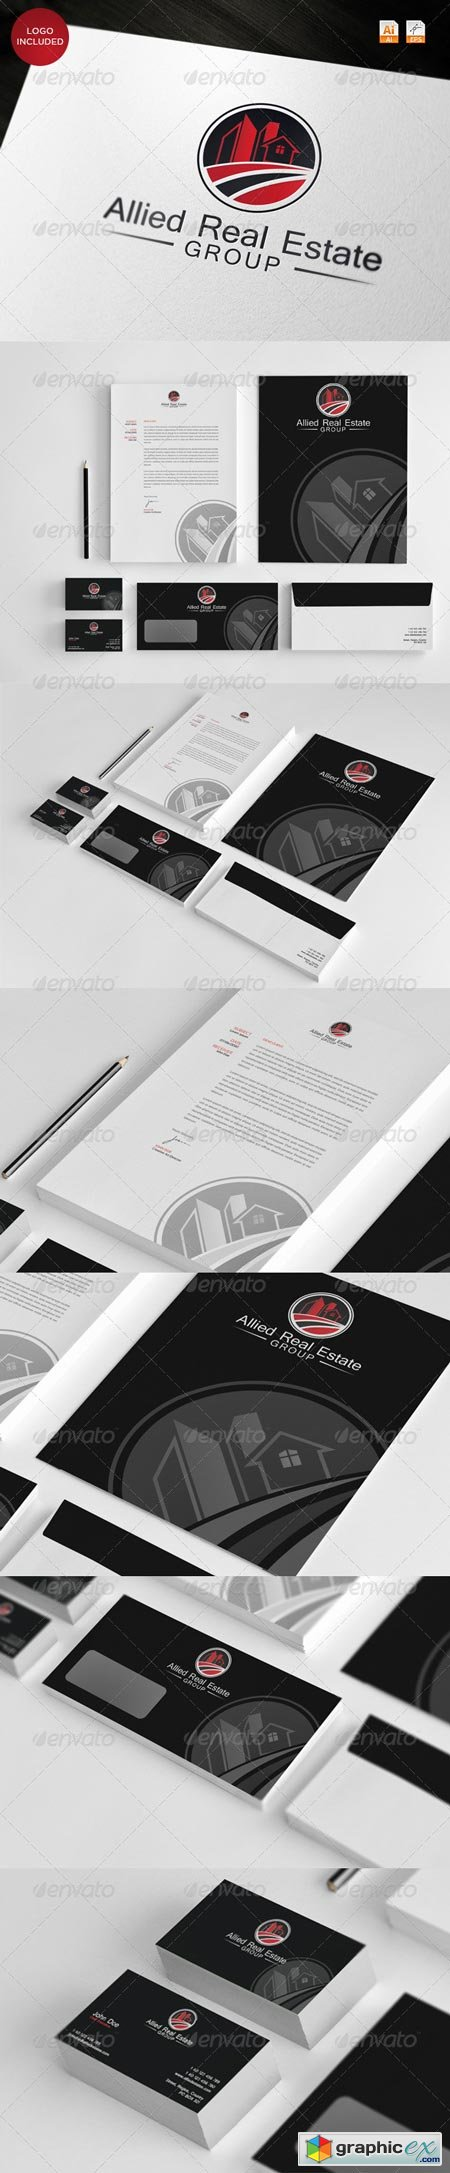 Corporate Identity - Allied Real Estate 3668088